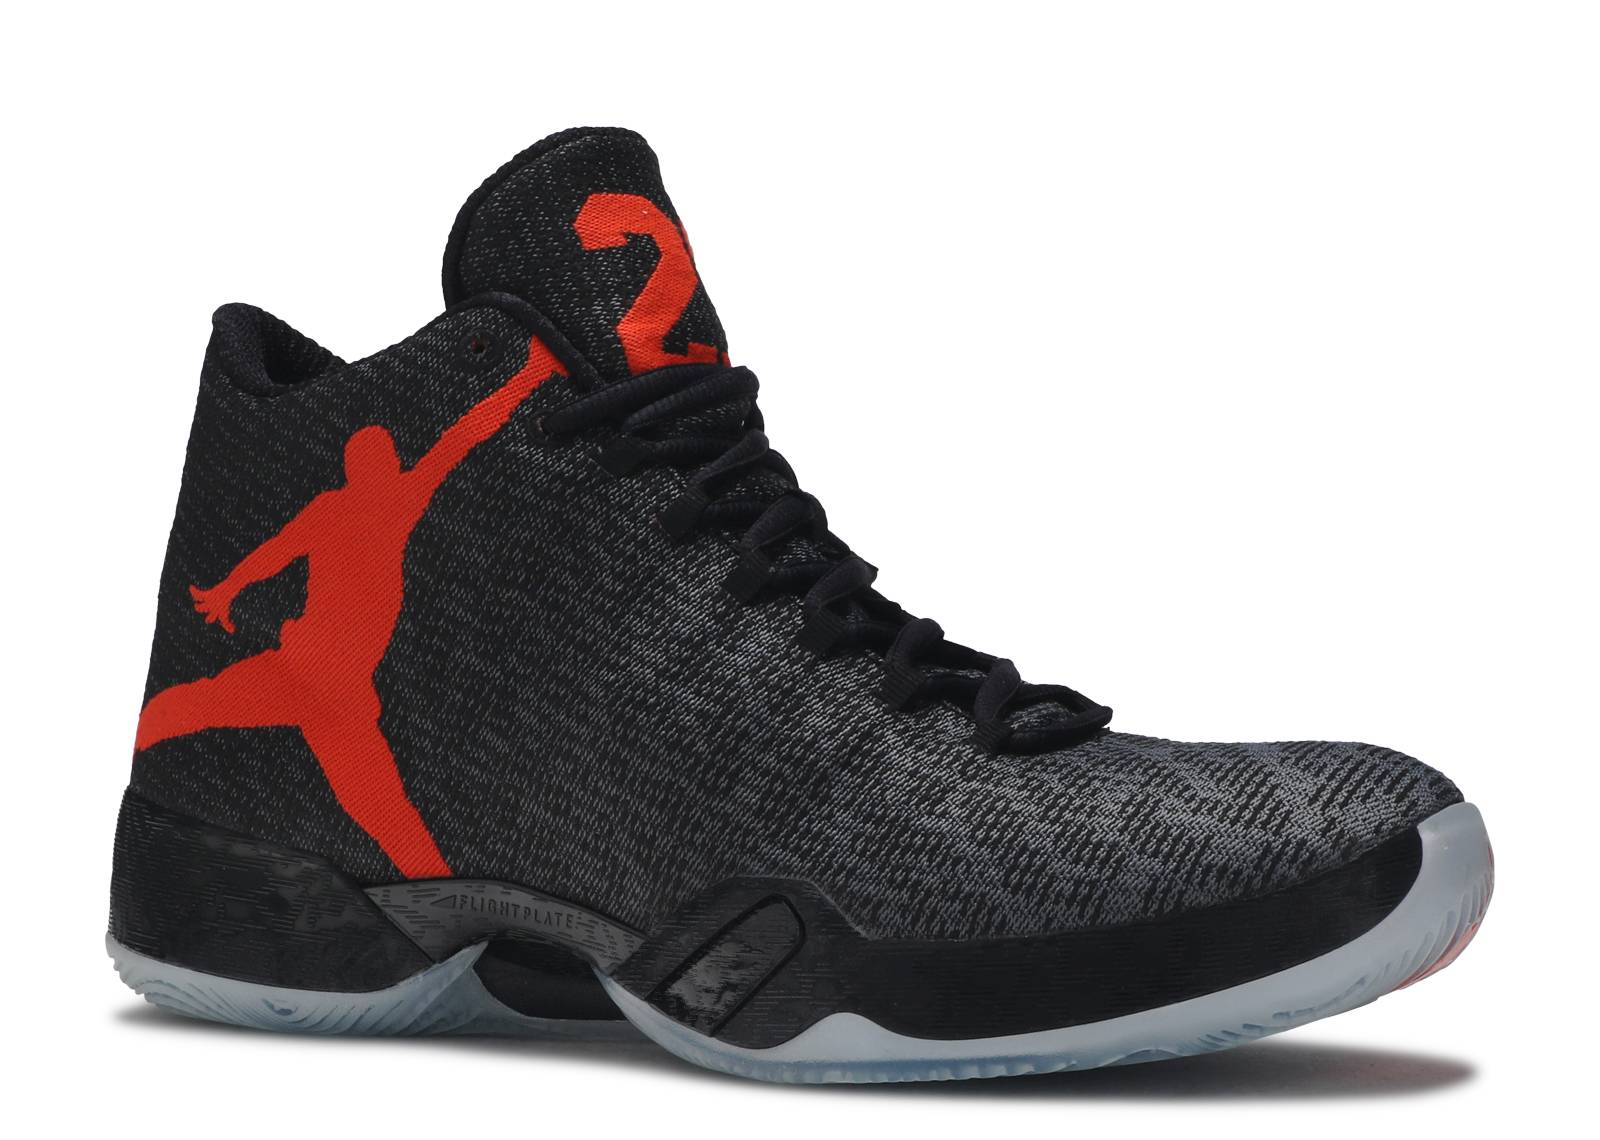 Air Jordan 29 Shoes